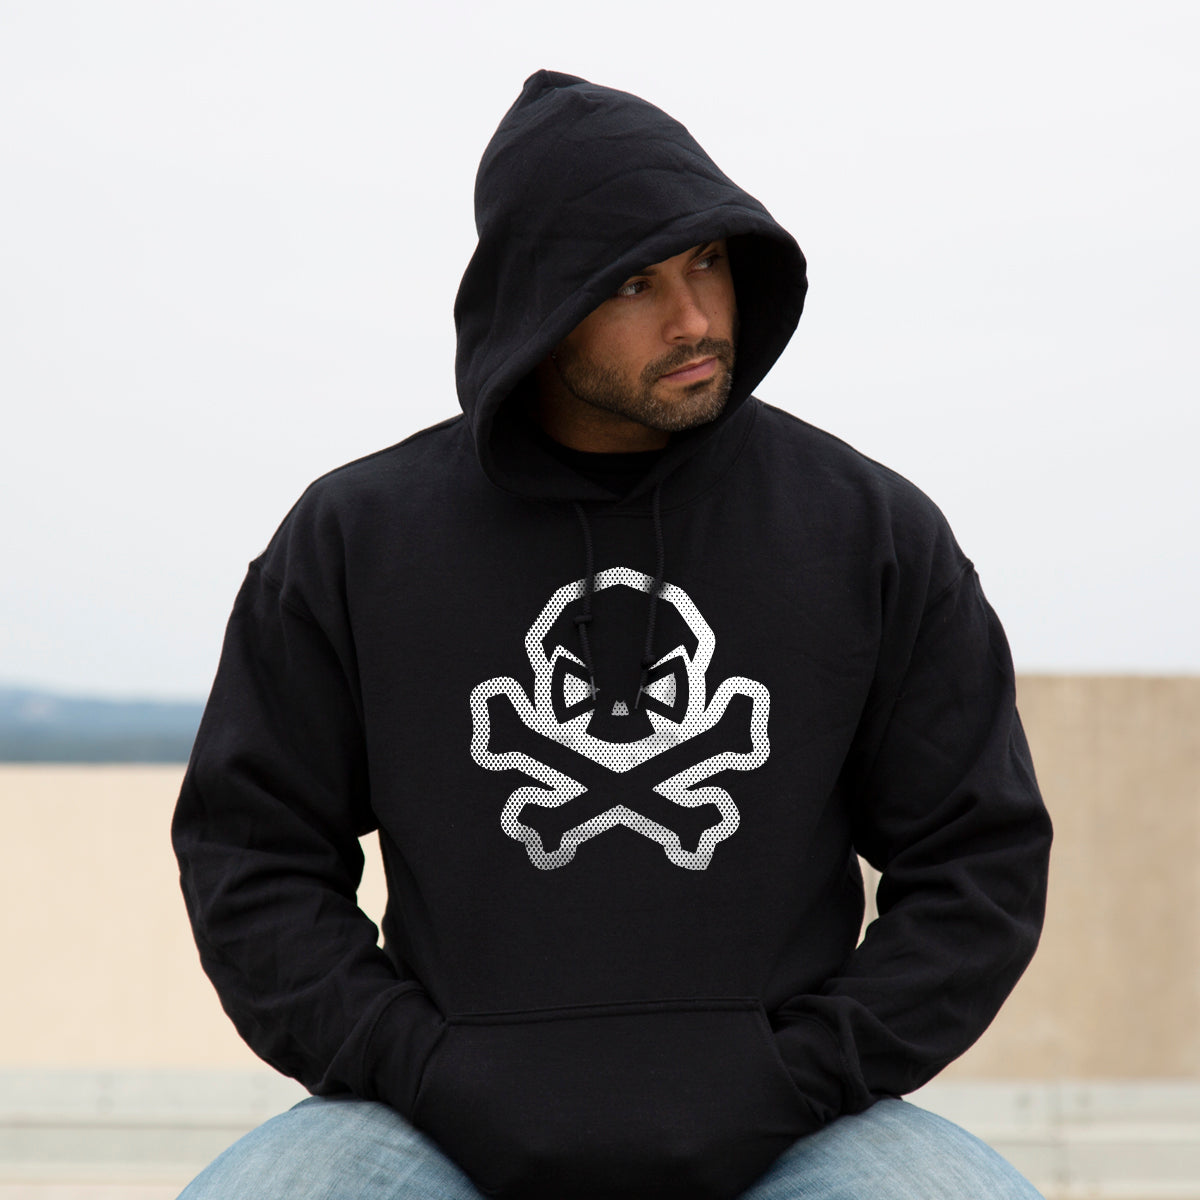 B&W Skull: Comic Edition Hoodie - Pipe Hitters Union